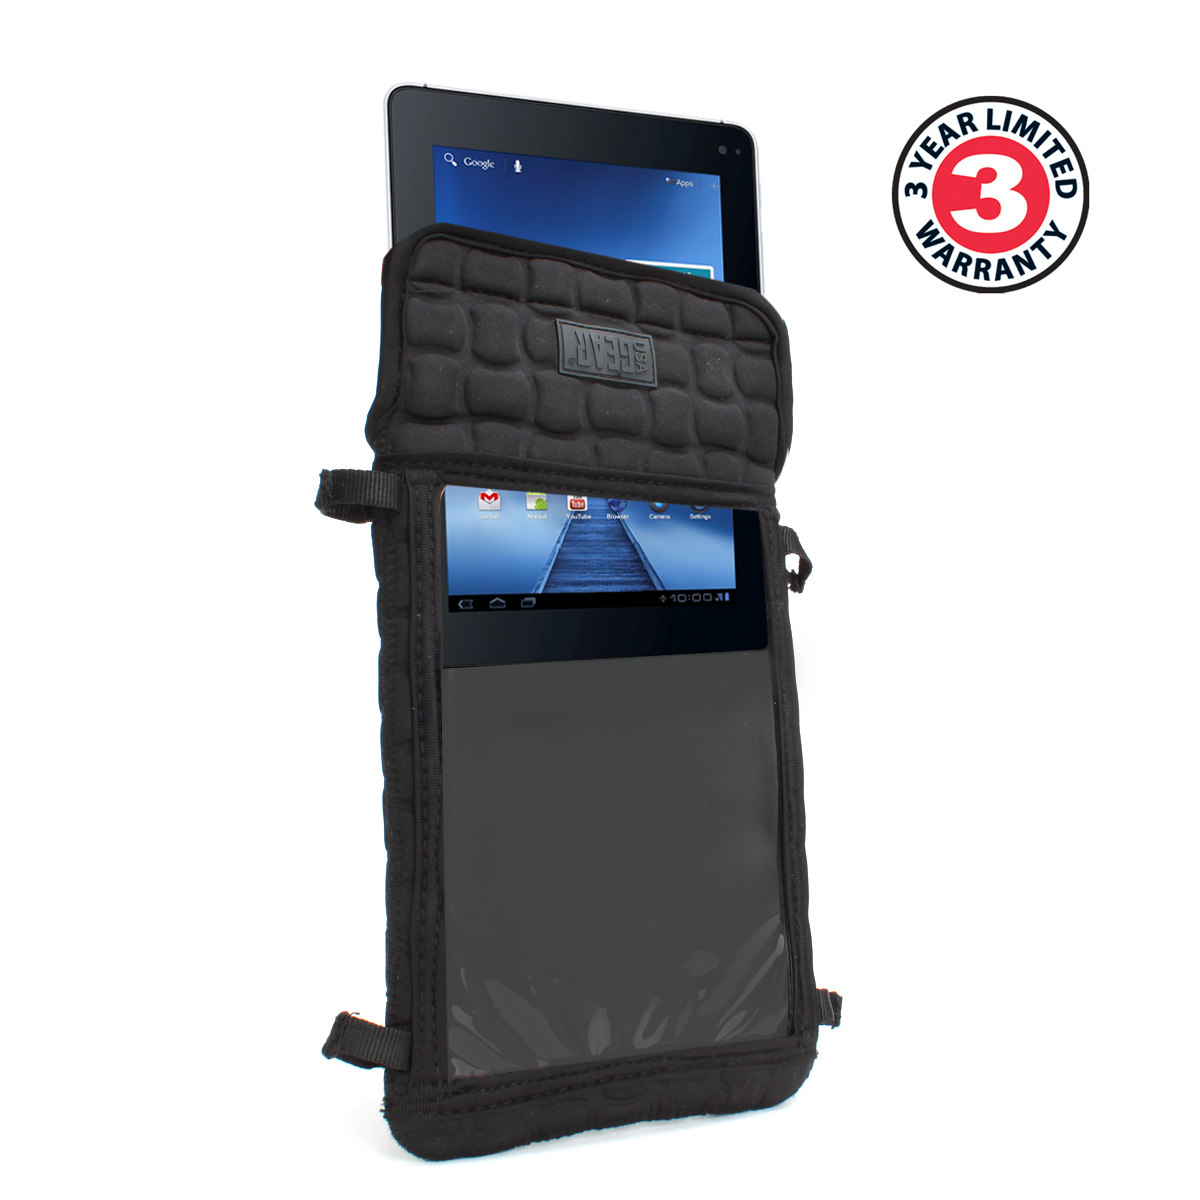 Tablet Cover Carrying Case W Screen Protector And